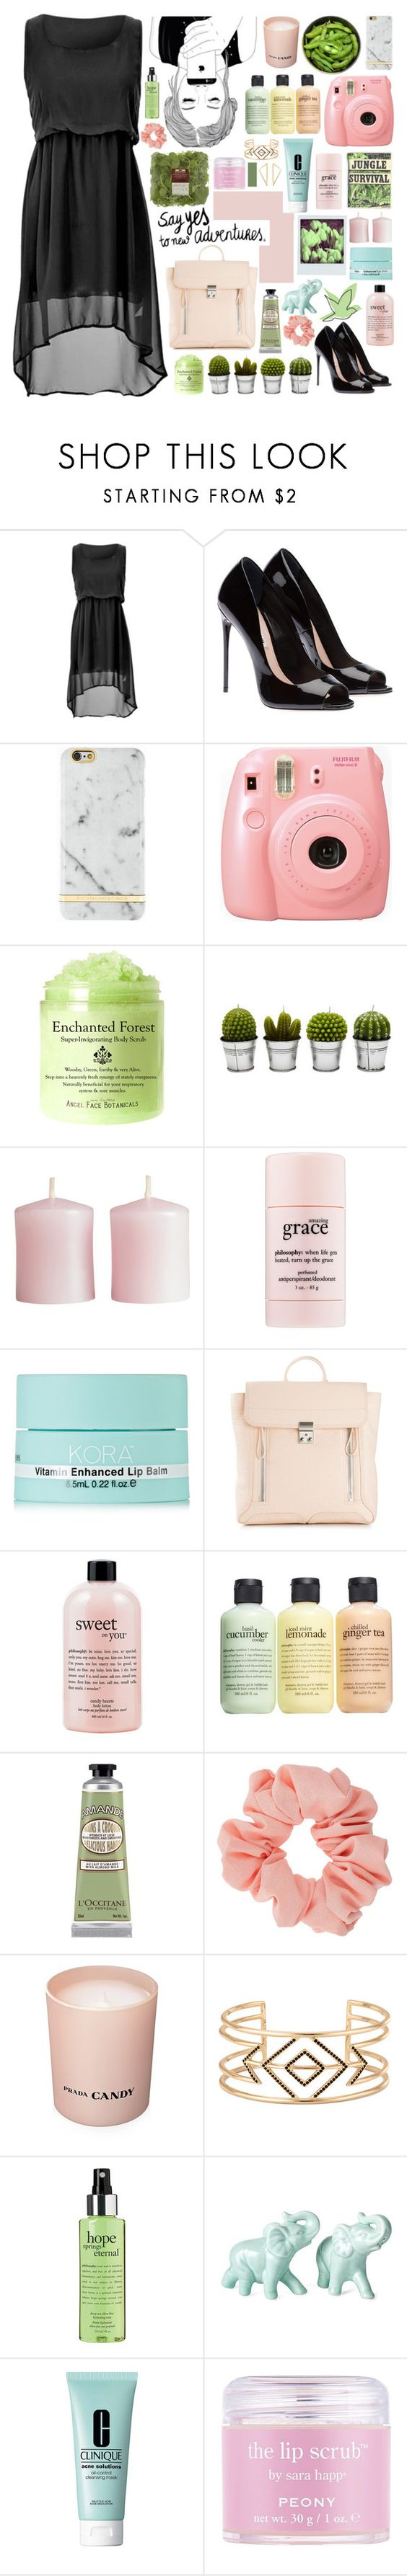 """say yes to new adventures"" by outfitsbyamalia ❤ liked on Polyvore featuring Richmond & Finch, Fujifilm, Martha Stewart, Billabong, H&M, philosophy, KORA Organics by Miranda Kerr, Polaroid, 3.1 Phillip Lim and L'Occitane"